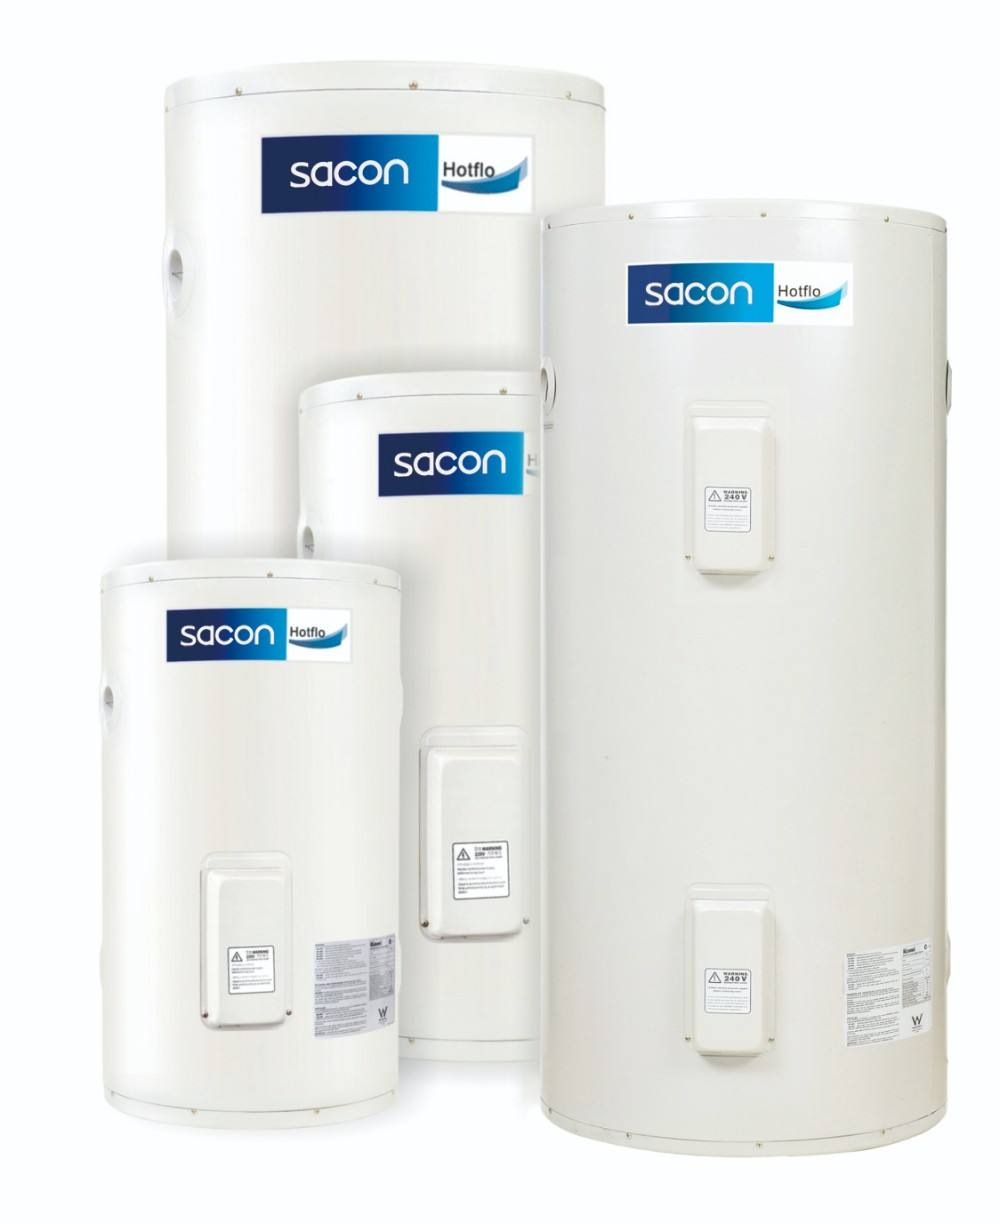 Sacon 180L(47 Gal.) Hot Water Cylinder Water Heater free standing water heater for shower and kitchen